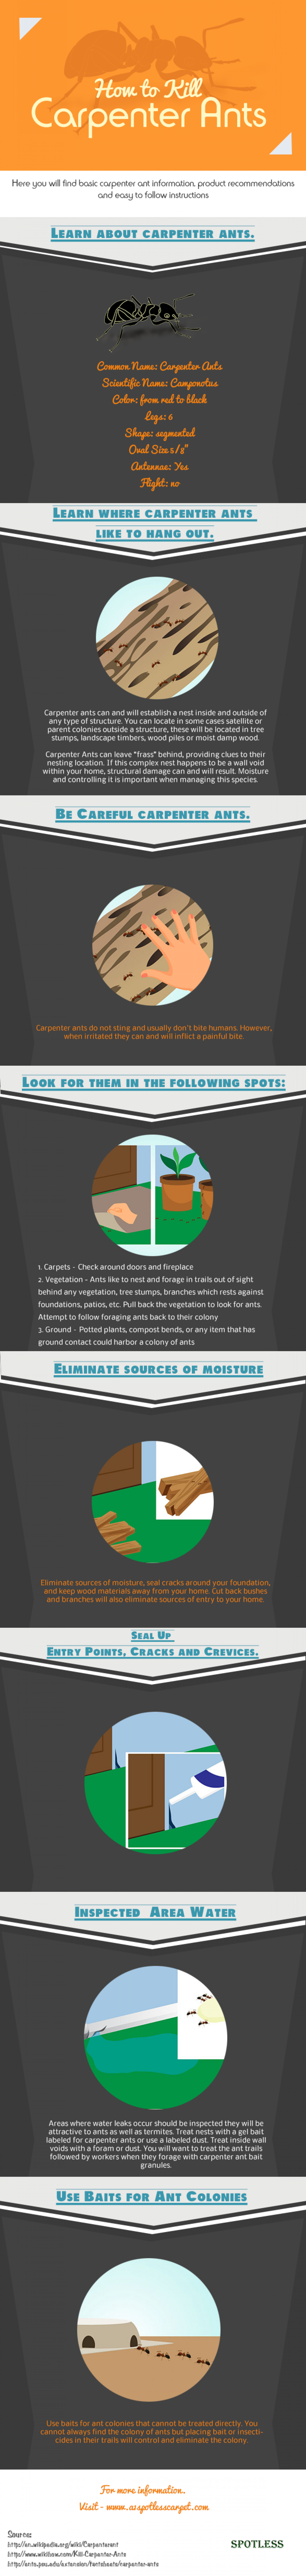 How to Kill Carpenter Ants Infographic